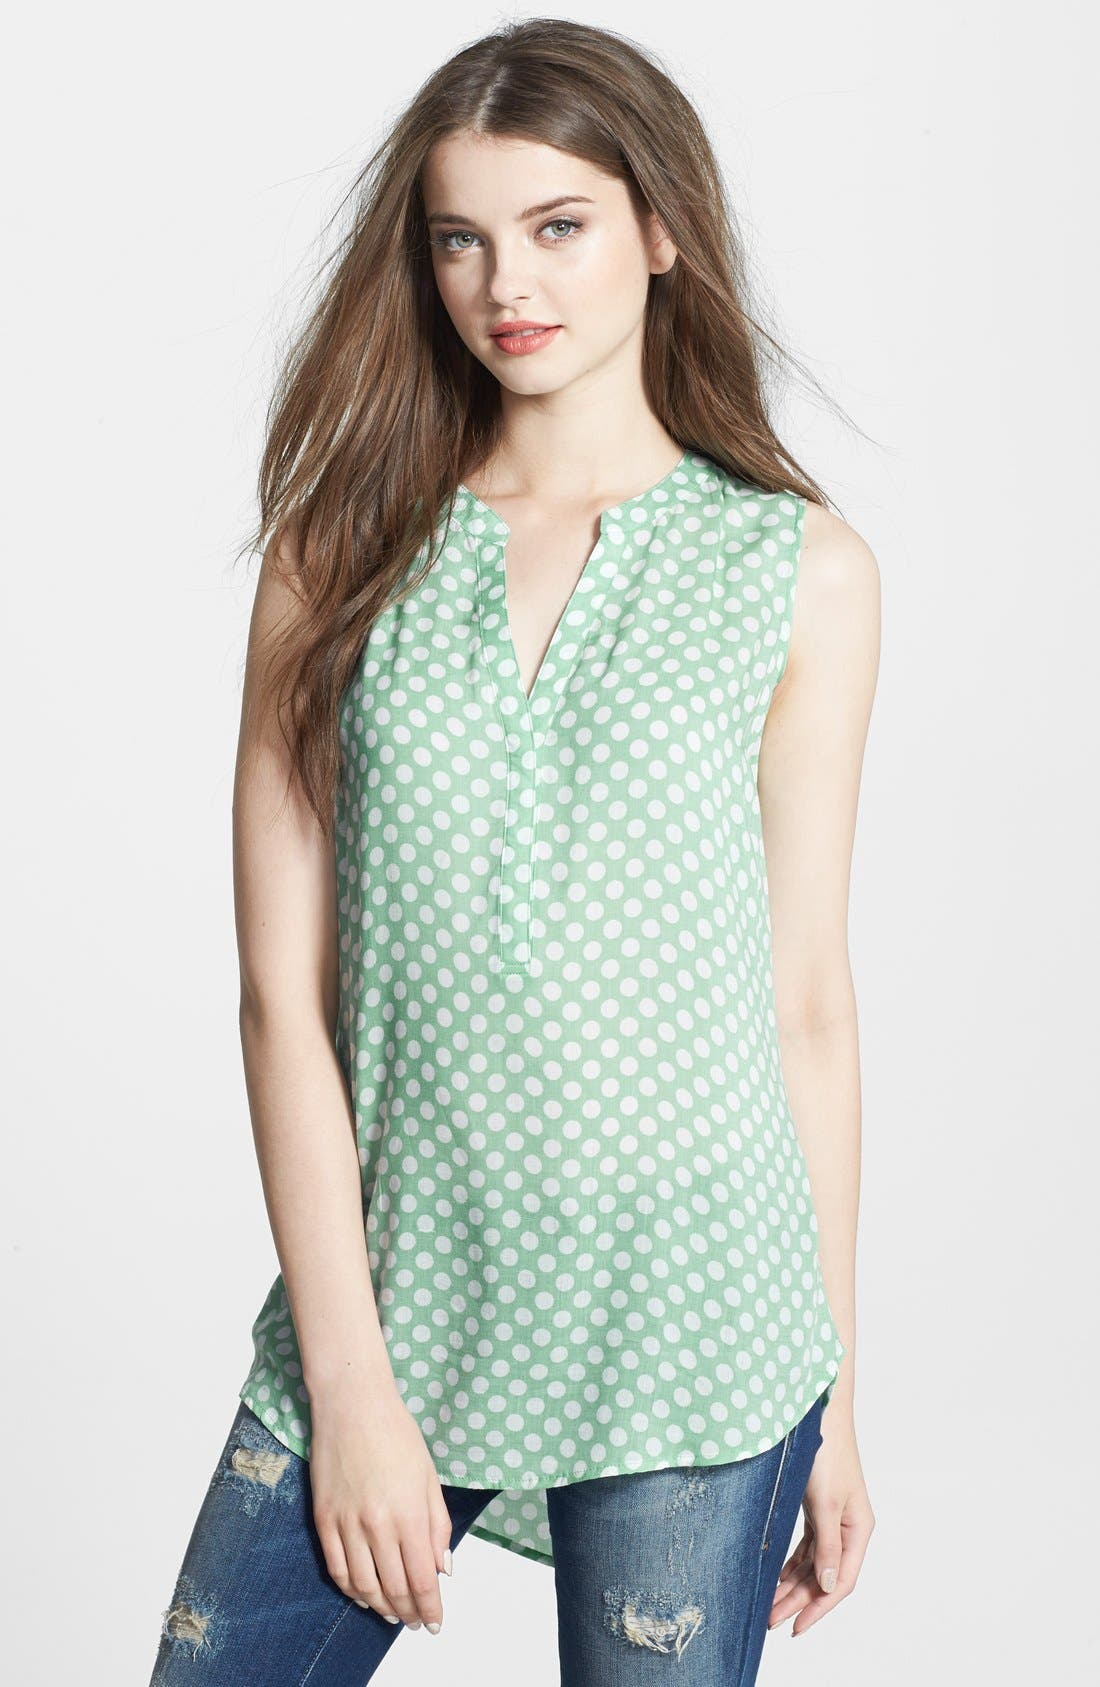 Main Image - Sandra Ingrish Sleeveless Dot Print Blouse